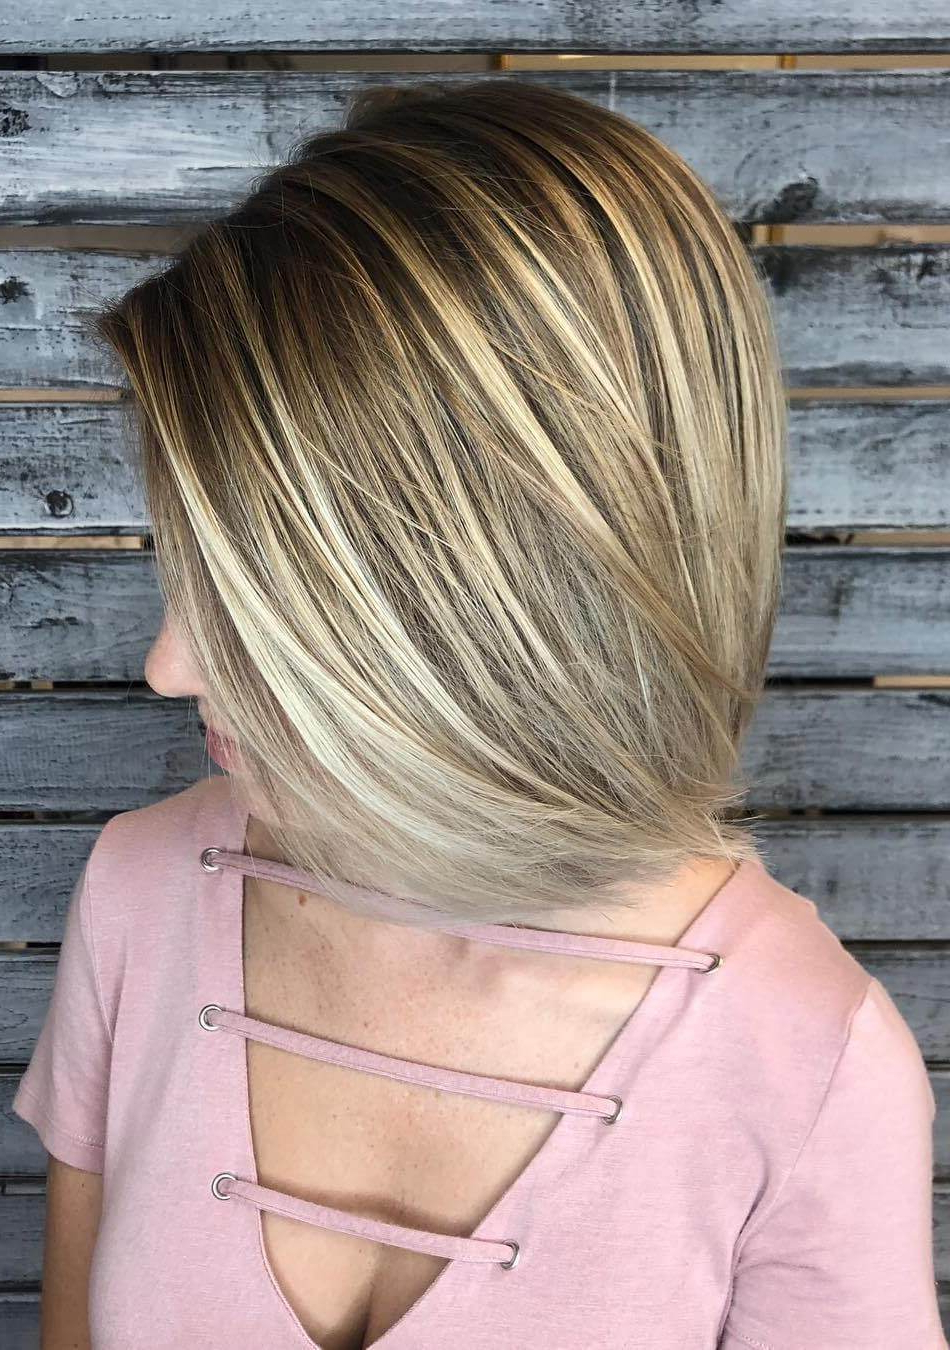 30 Trending Fresh Blonde Bob Hairstyles For Stacked Sleek White Blonde Bob Haircuts (View 17 of 20)